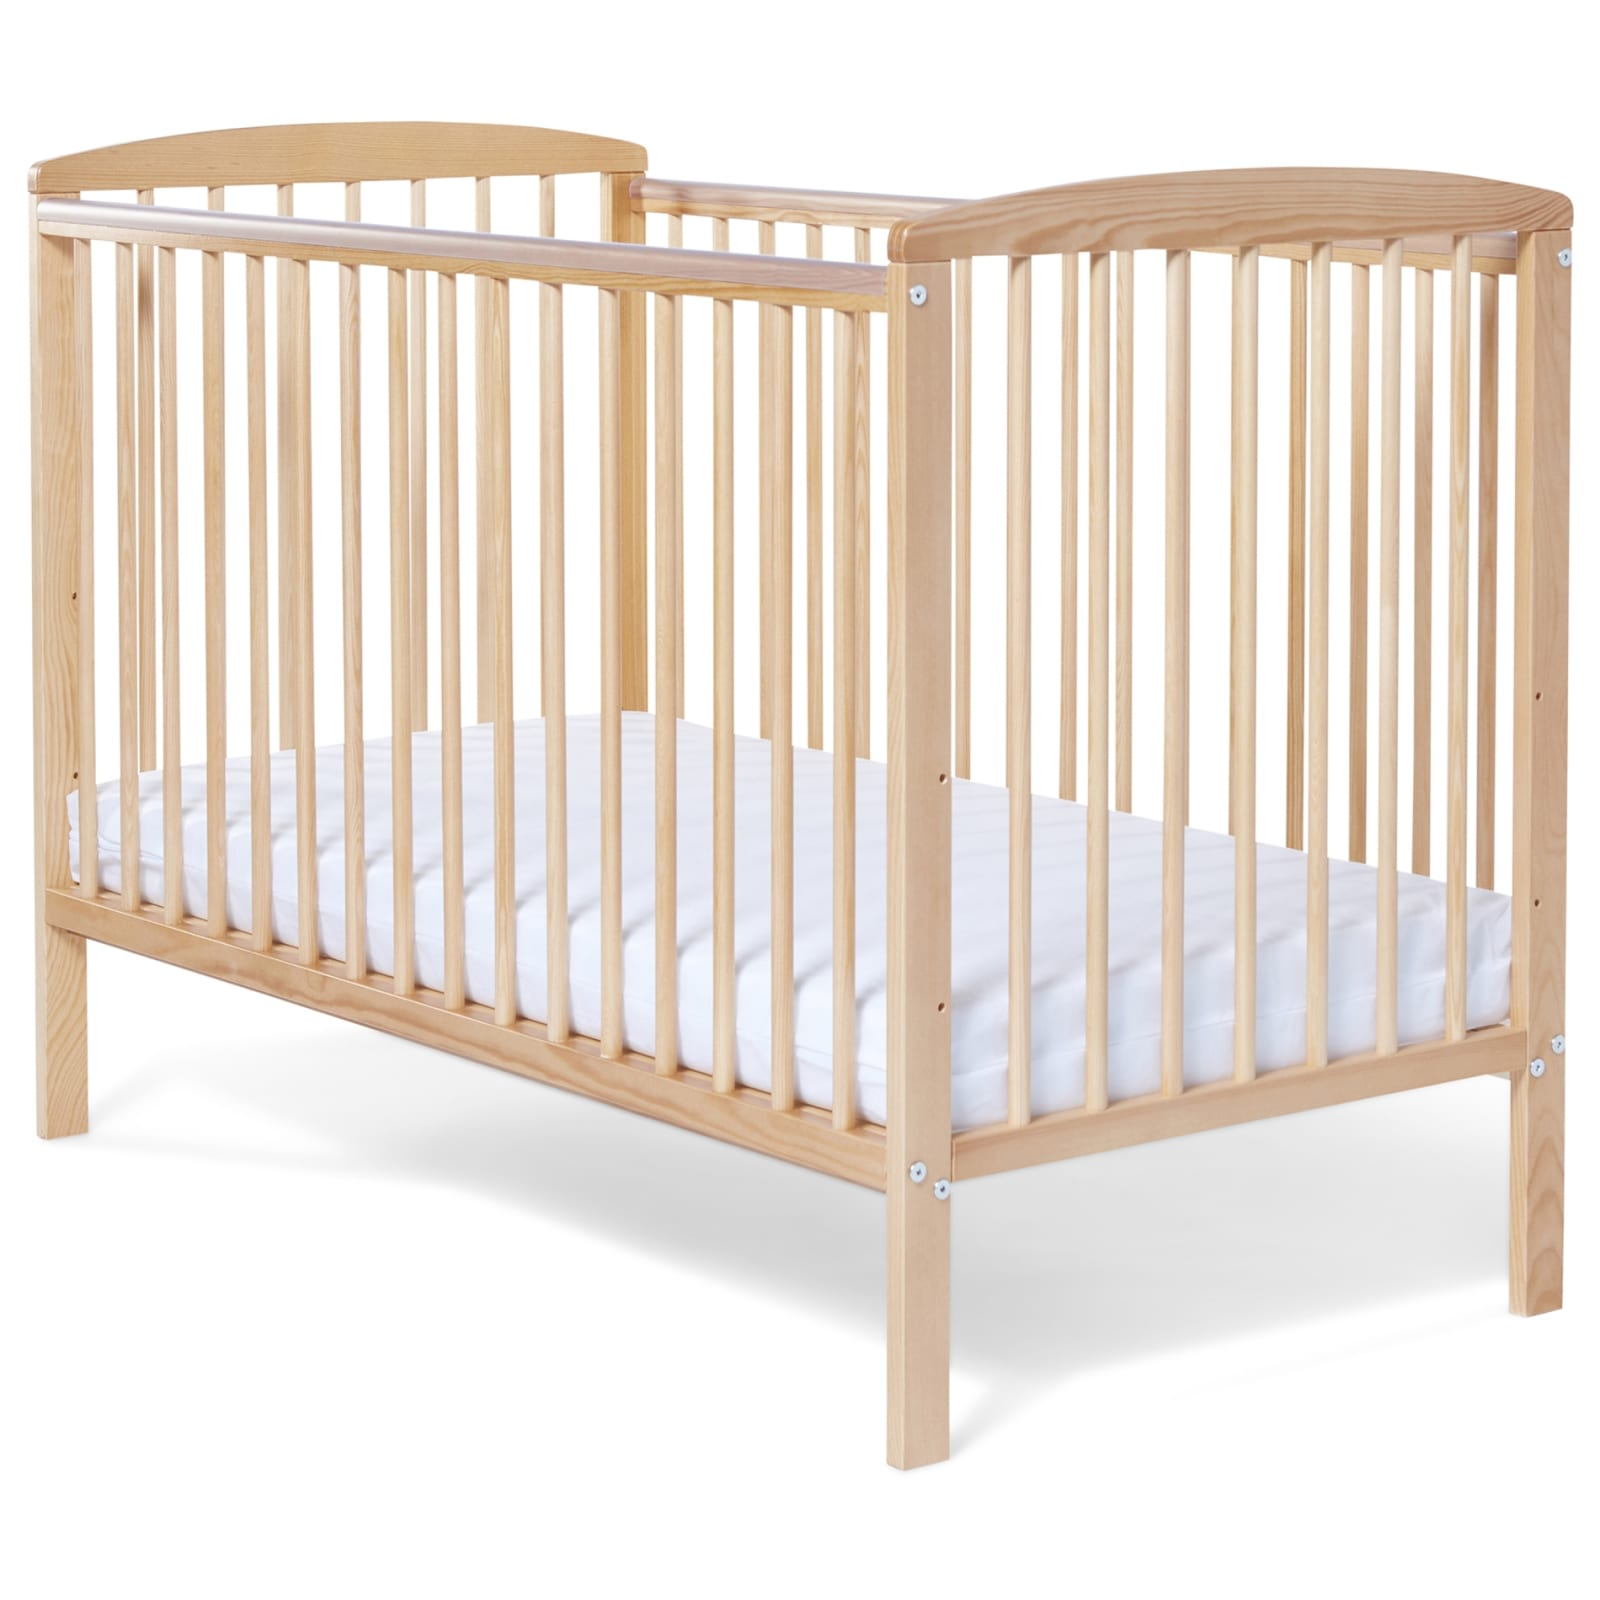 Starlight Cot – Pine product image